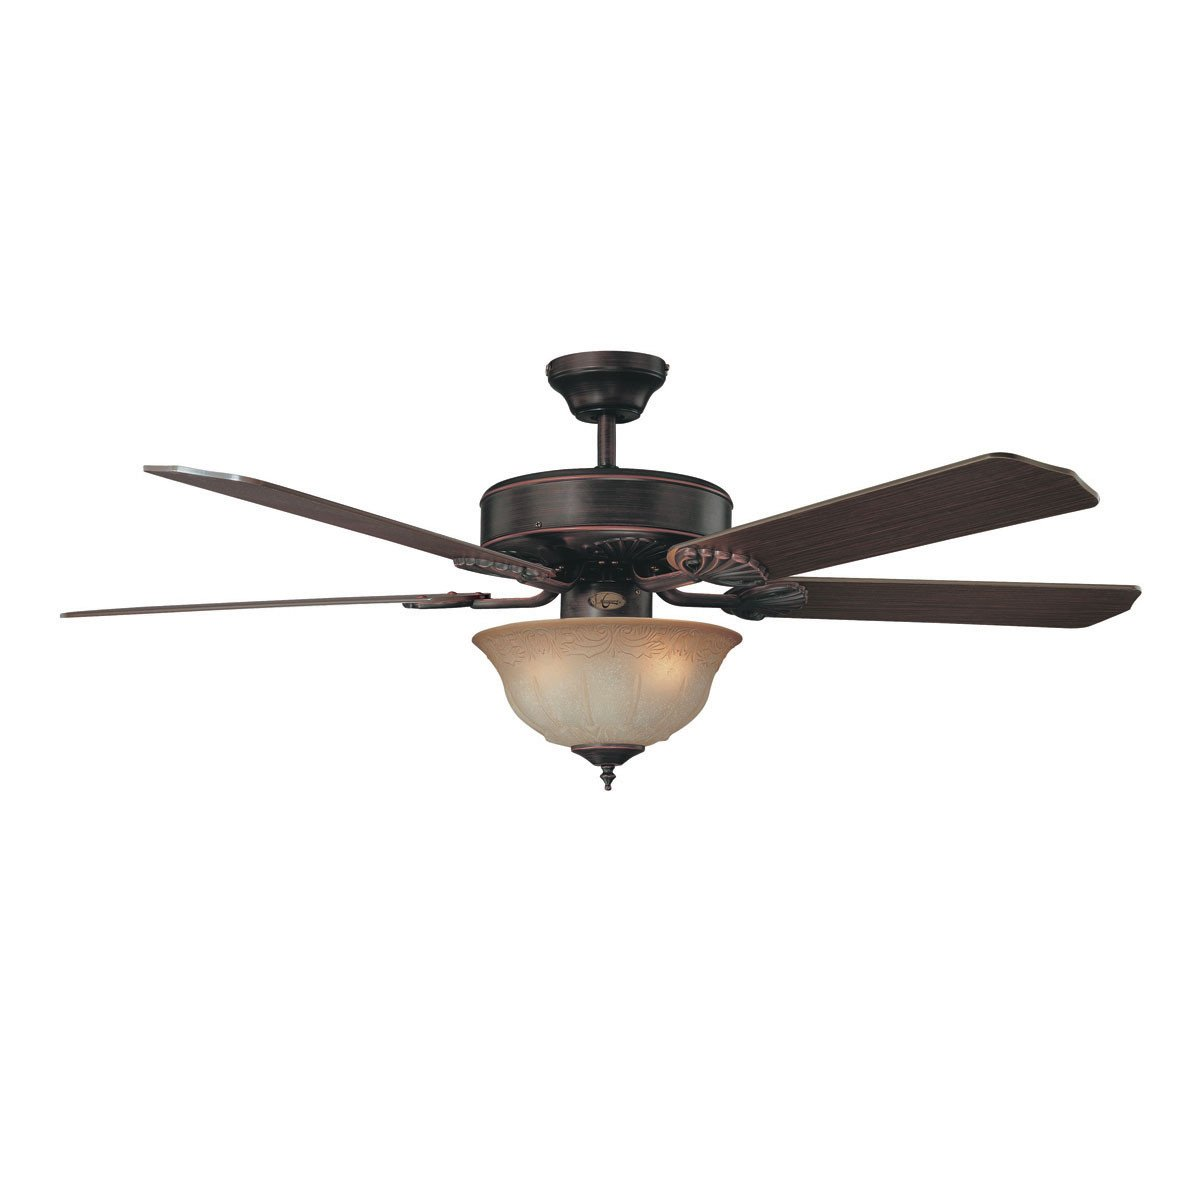 "Concord Fans 52"" Heritage Designer Oil Rubbed Bronze Ceiling Fan with Light Kit"